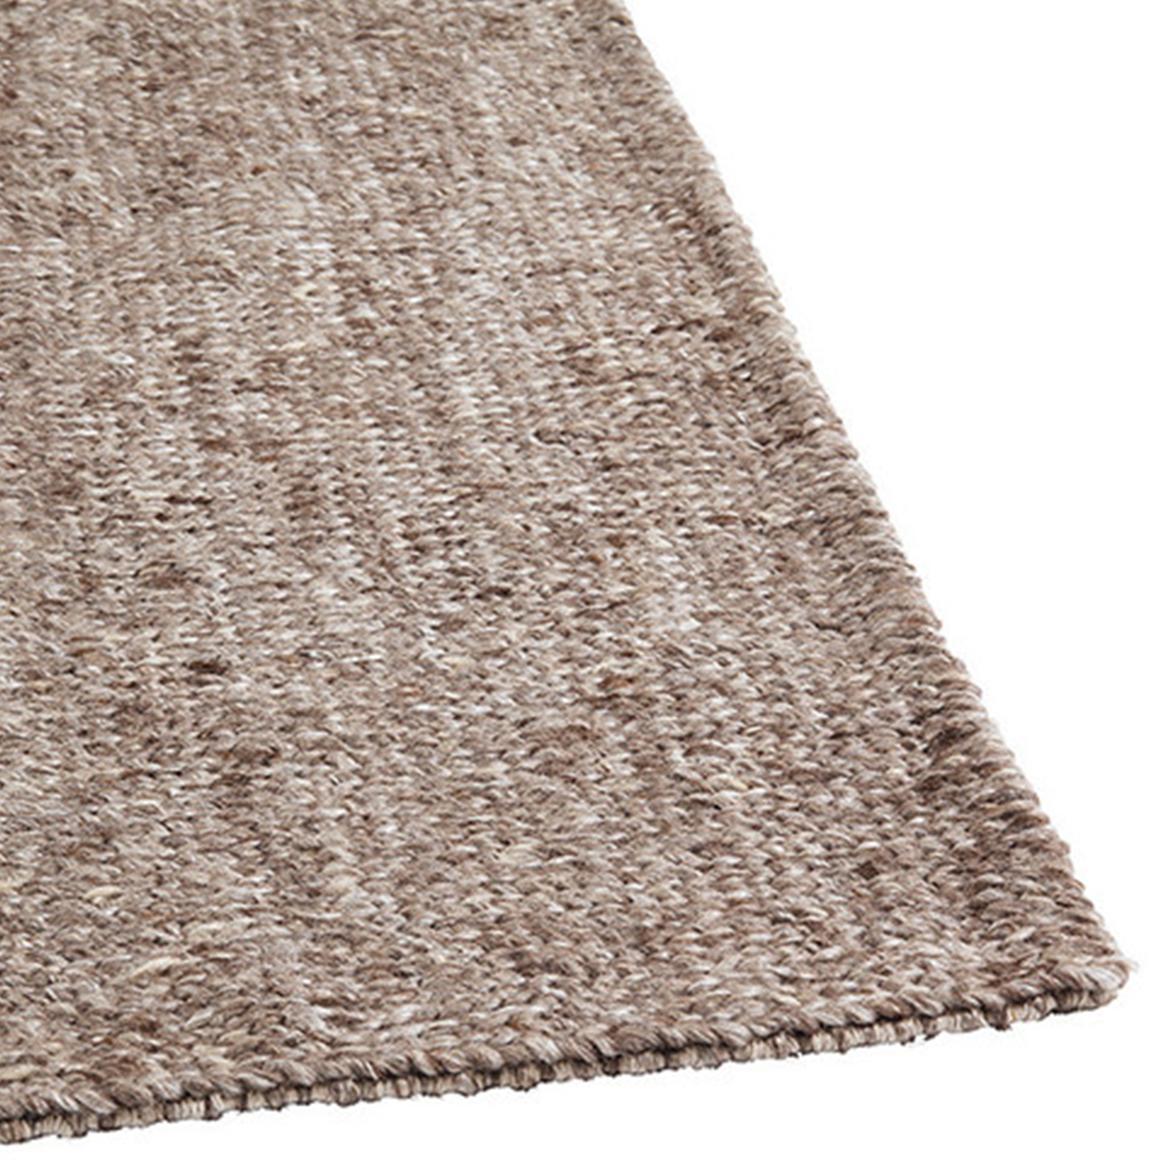 ARMADILLO SIERRA WEAVE RUG - Eclectic Cool  - 6